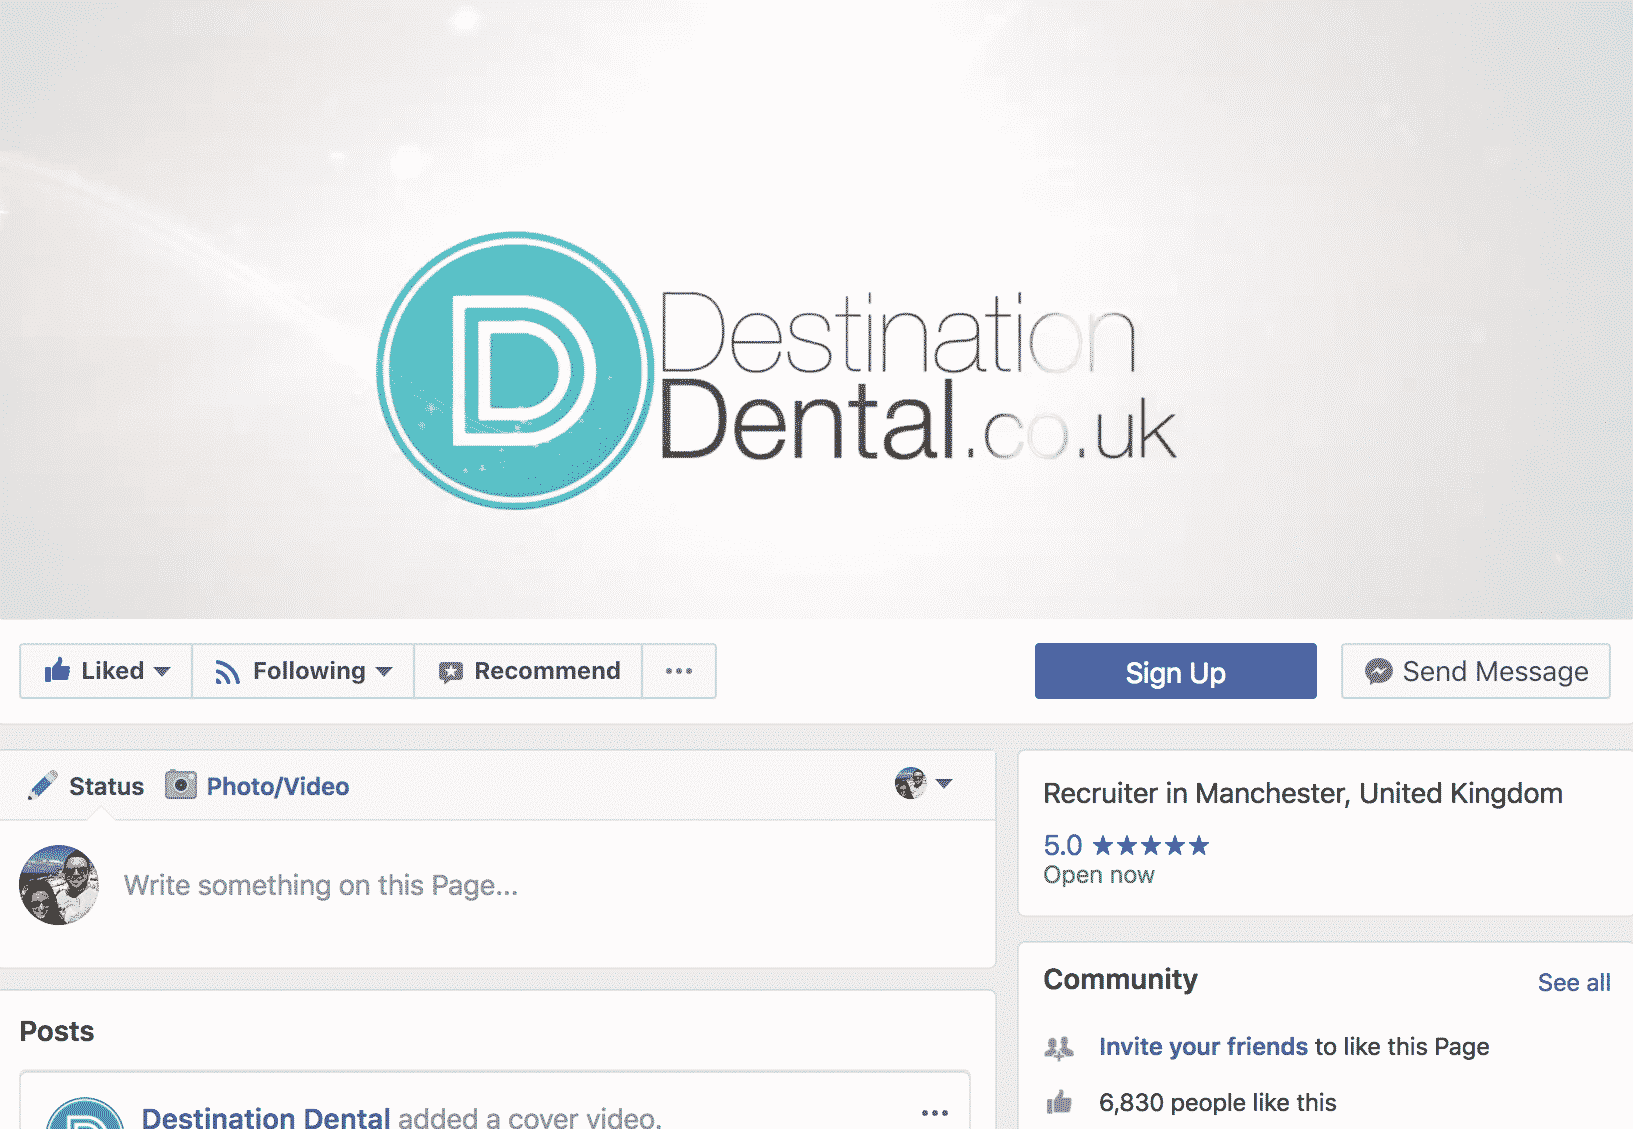 Have you considered using Facebook as part of your Dental Recruitment Strategy?